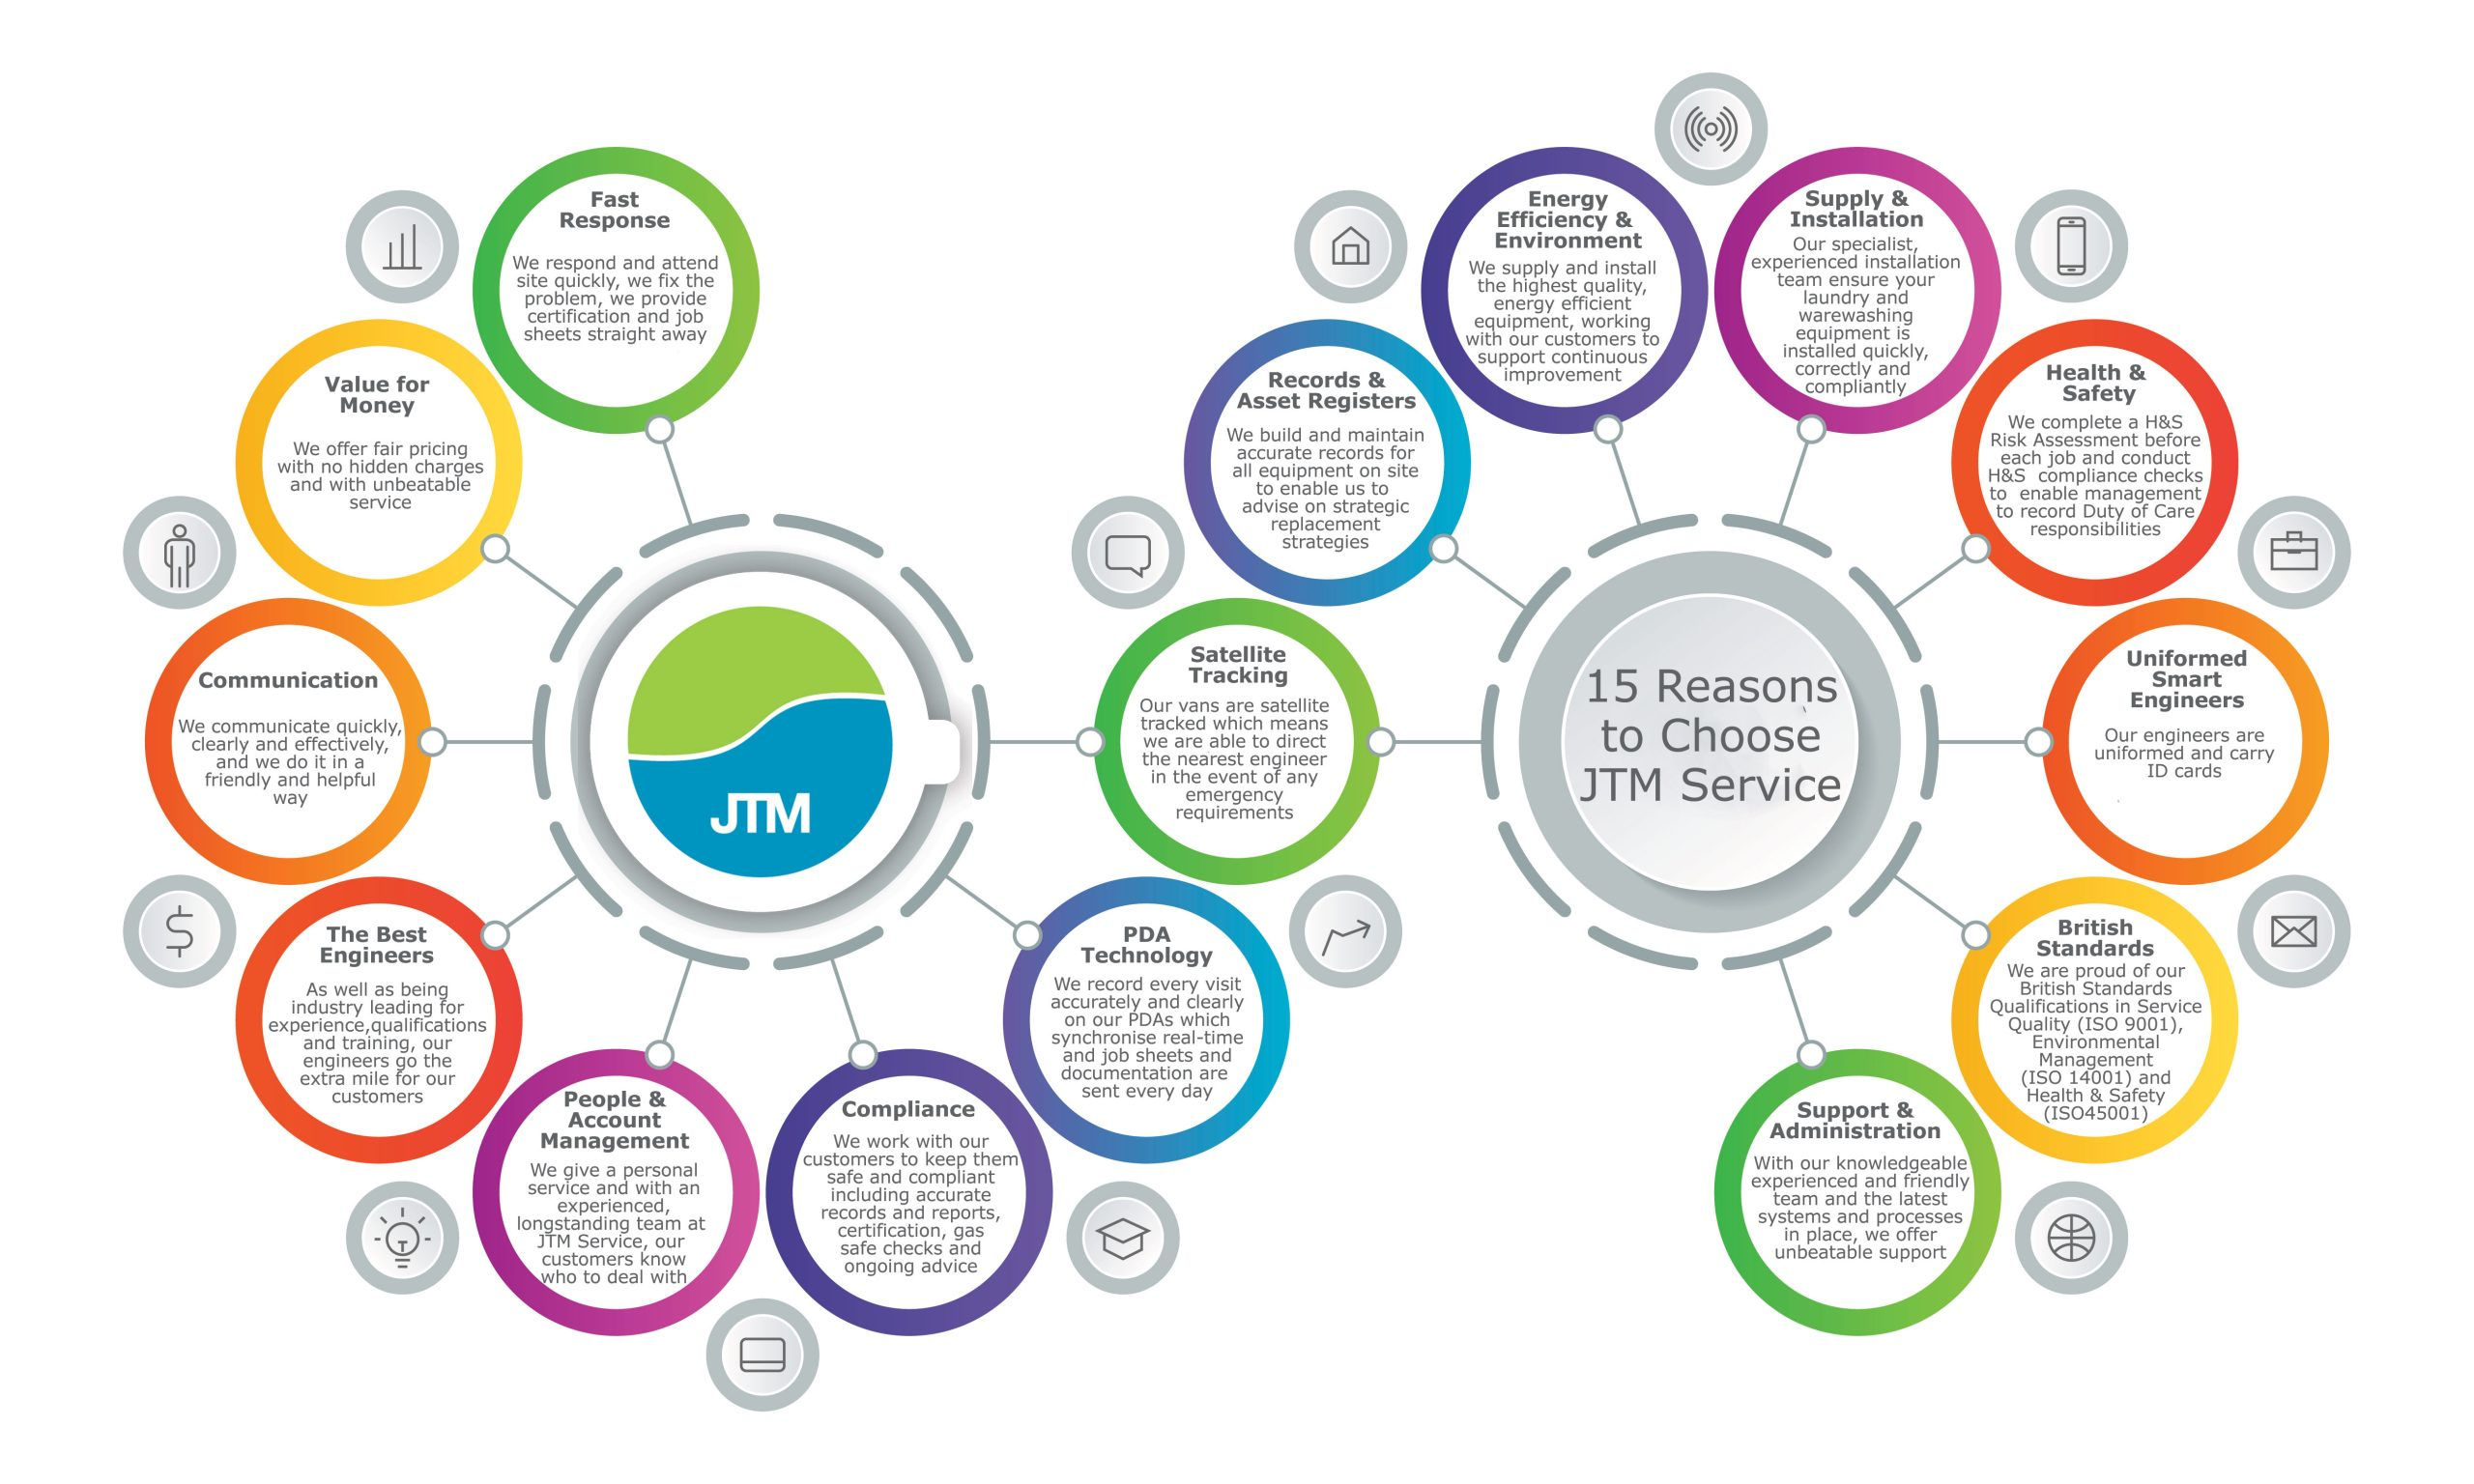 15 Reasons to Choose JTM Service 1